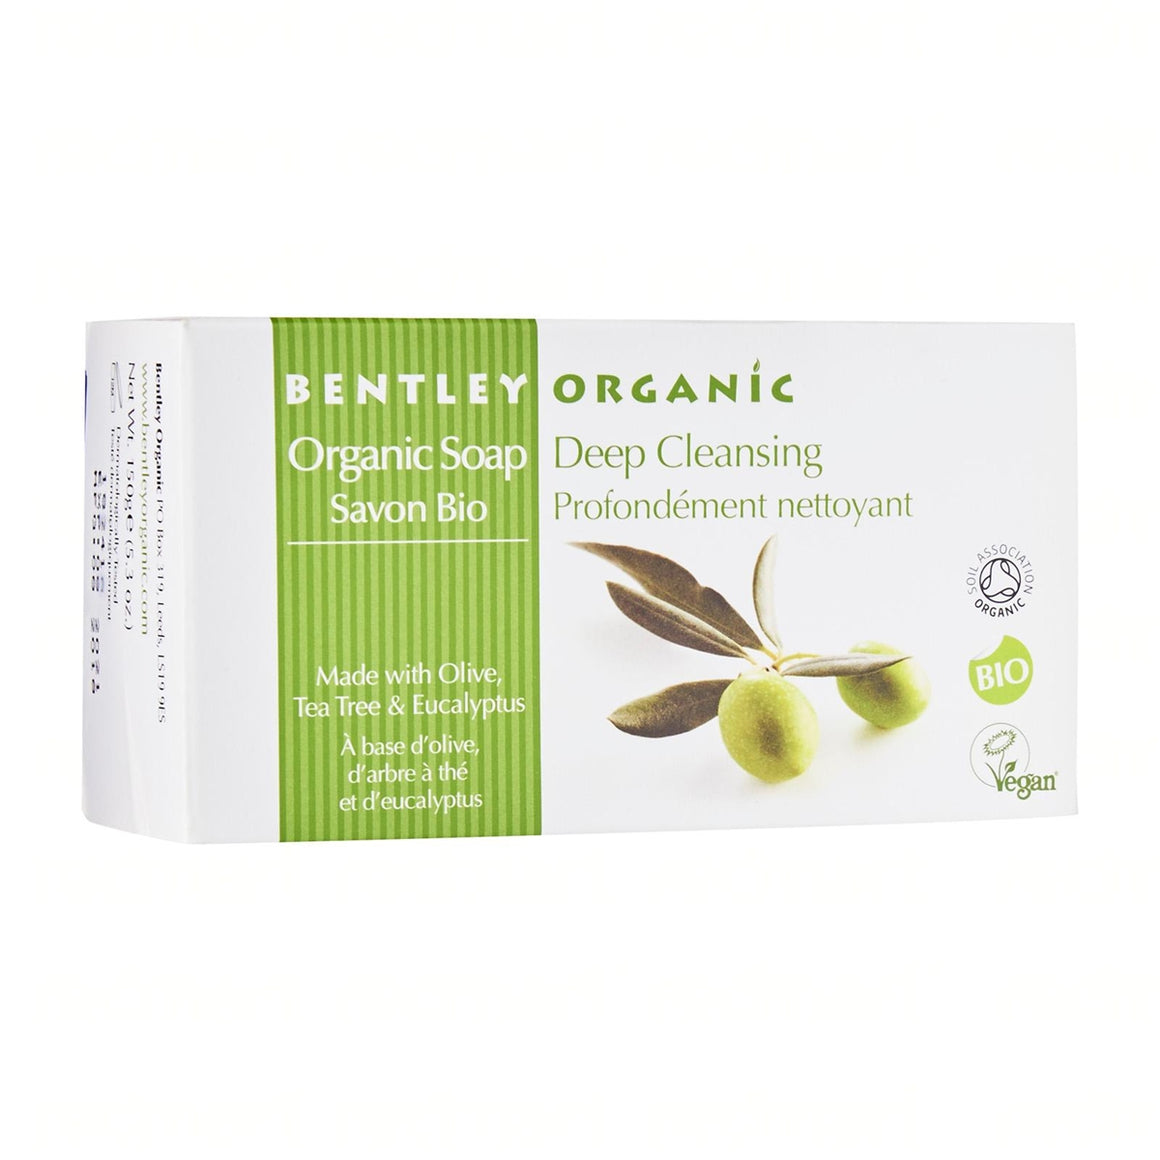 Bentley Organic : Deep Cleansing Soap Bar